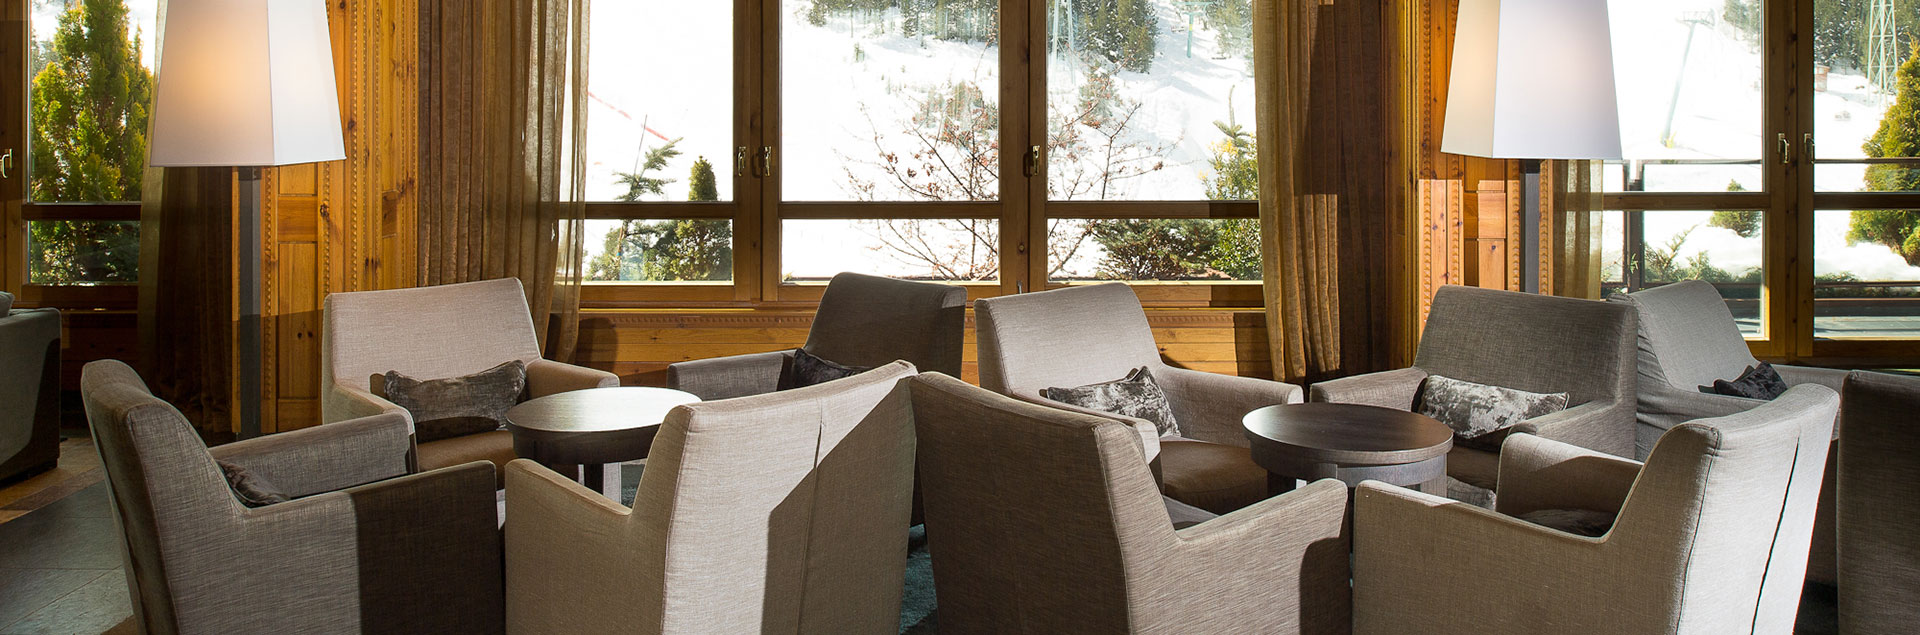 grandvalira slopes views glassbar hermitage hotel